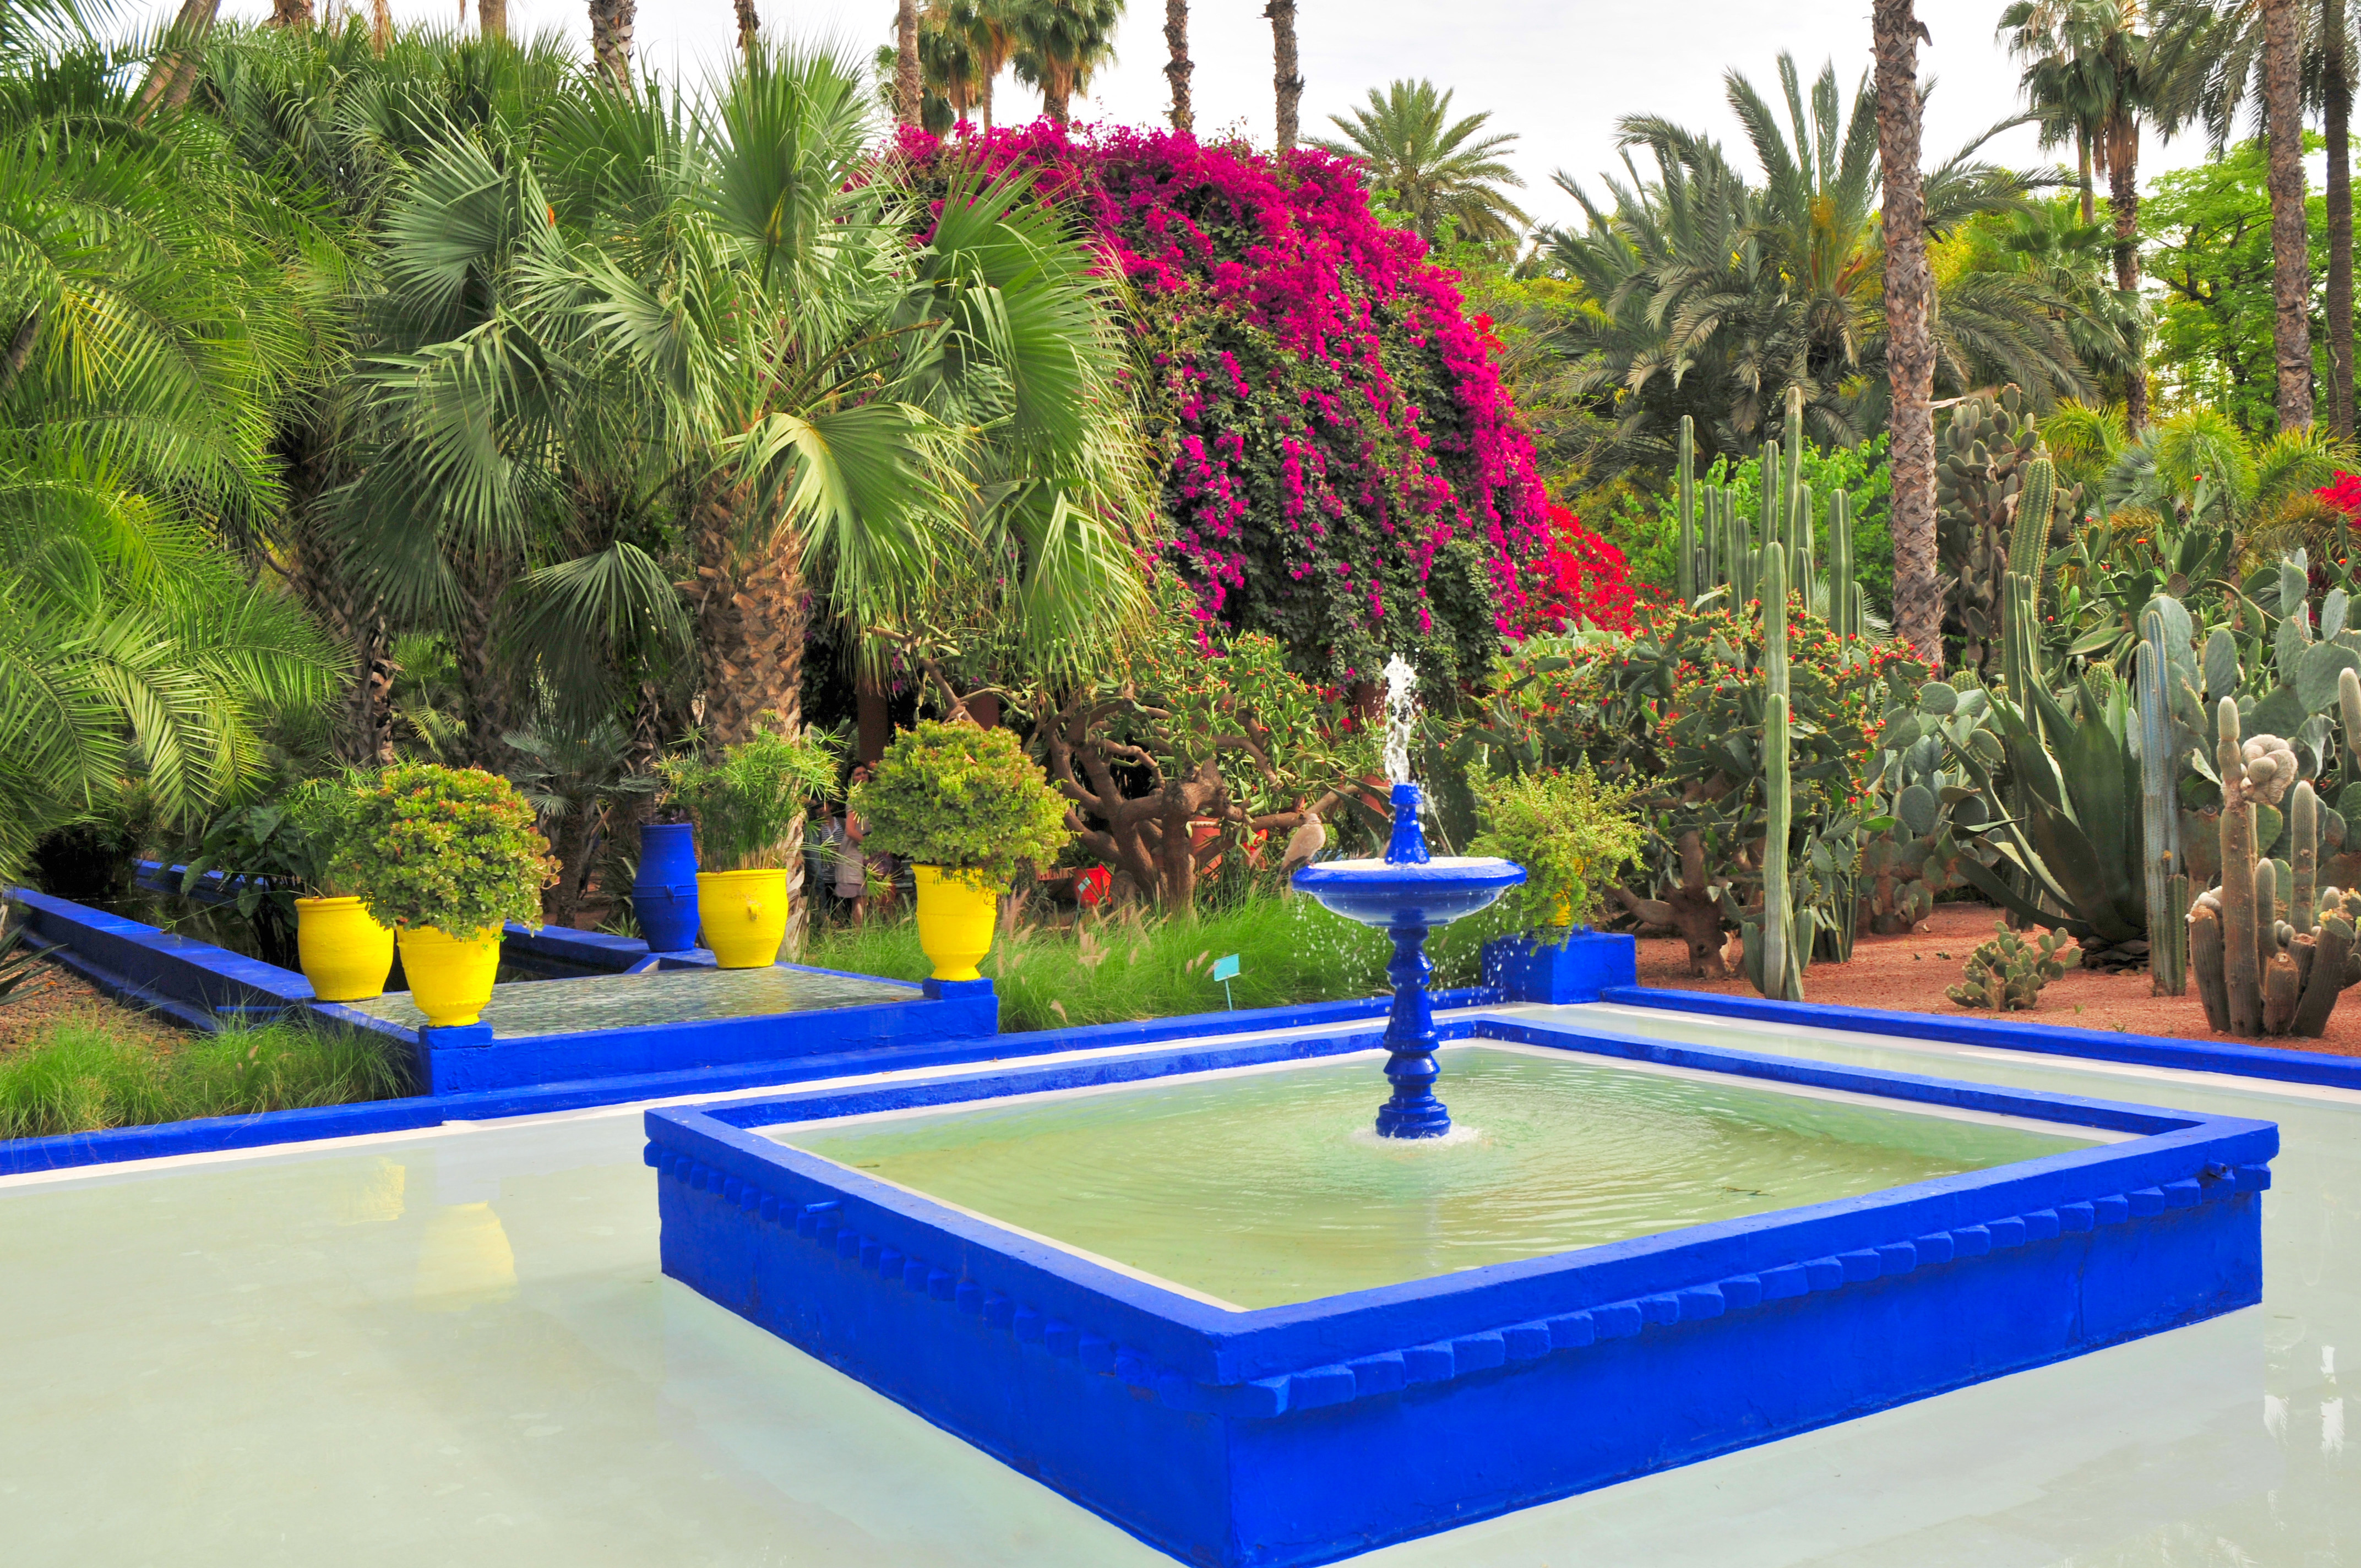 1000 images about jardin majorelle on pinterest marrakech morocco marrakech and morocco. Black Bedroom Furniture Sets. Home Design Ideas